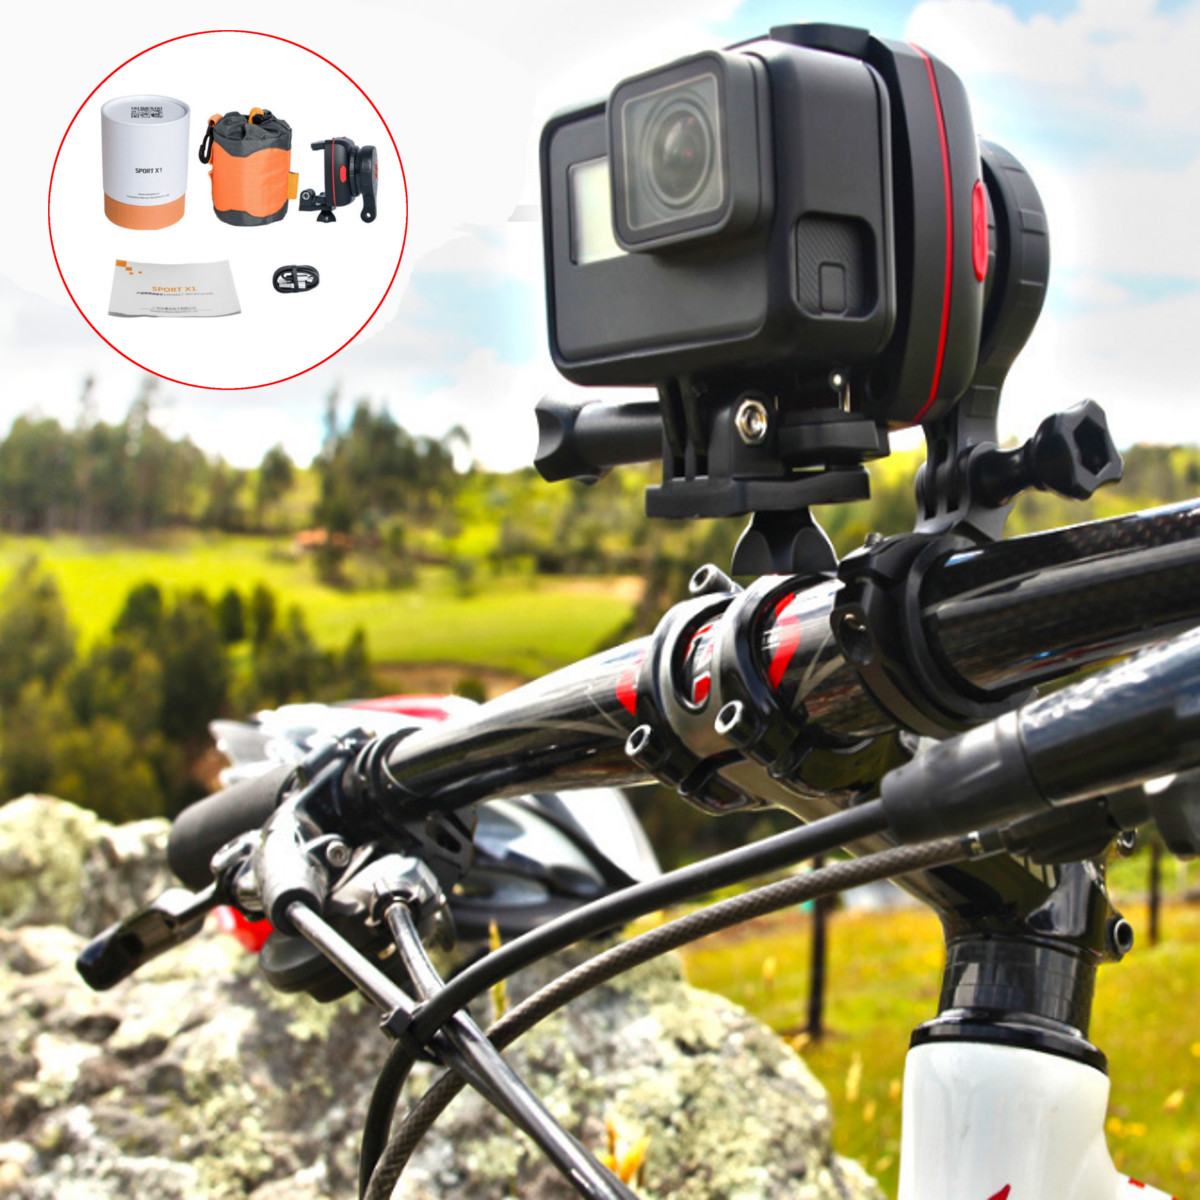 Wewow Sport X1 Handheld 1-Axis Wearable Portable Stabilizer Gimbal for GoPro 3 3+ 4 5 Smartphone